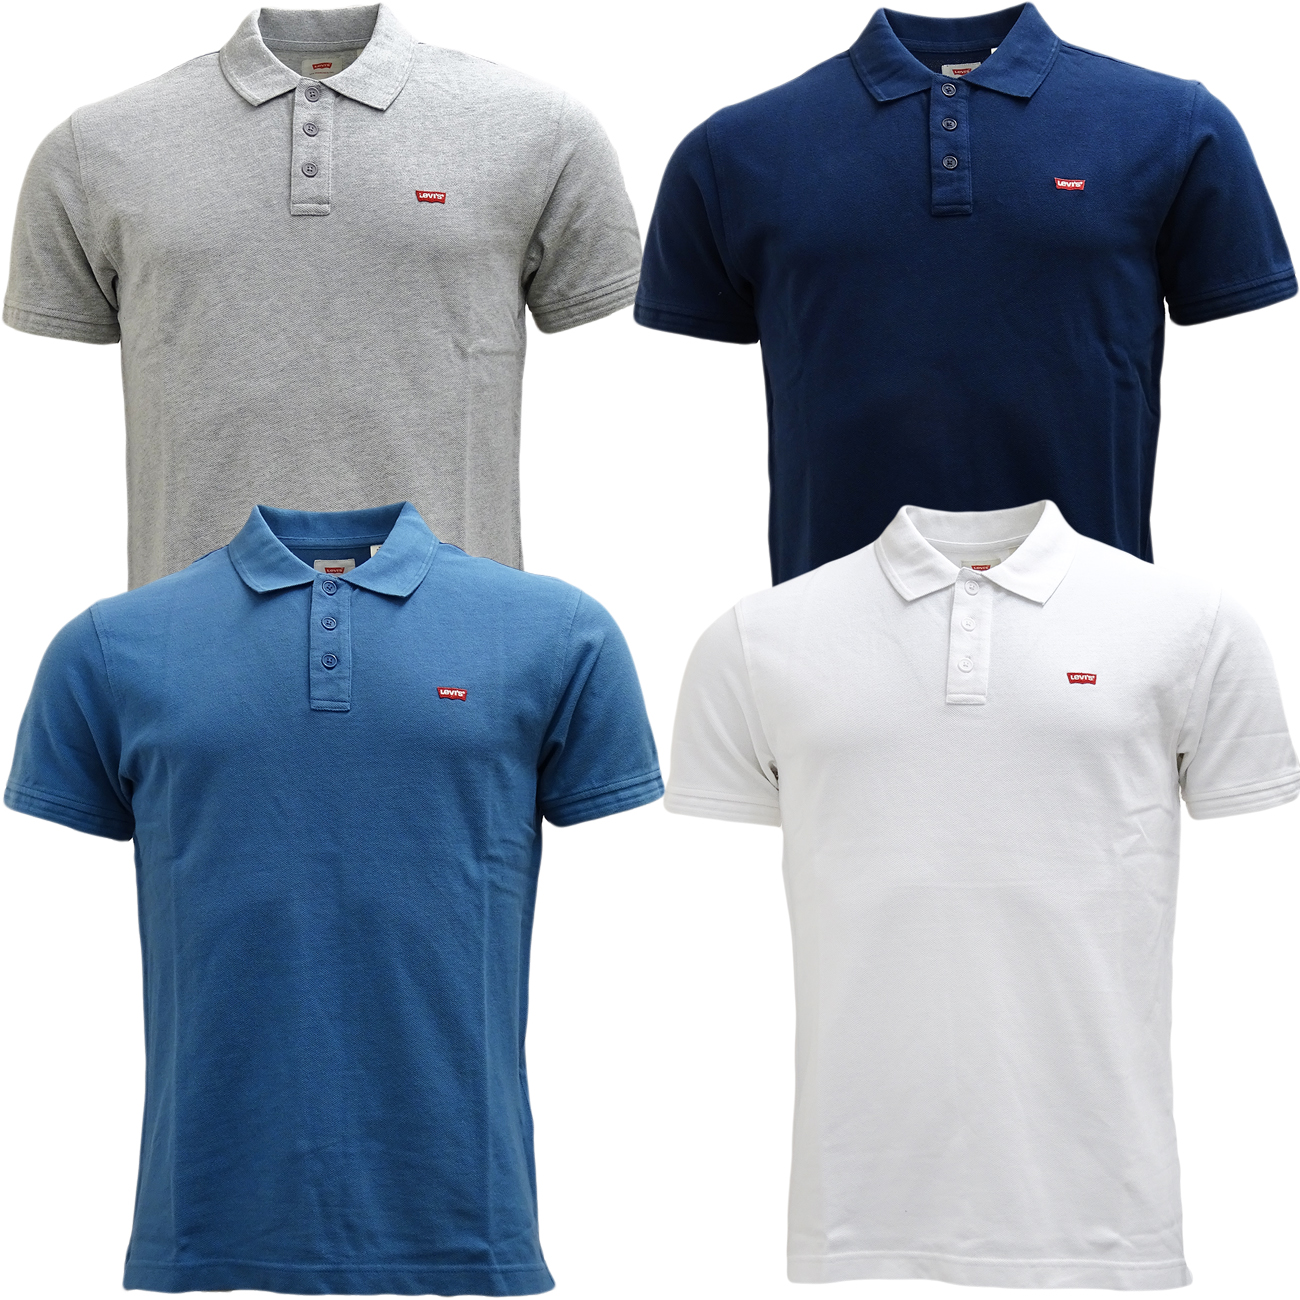 d1998fdc9a Sentinel Mens Levi Strauss Polo Shirt Smart   Casual Polo Top